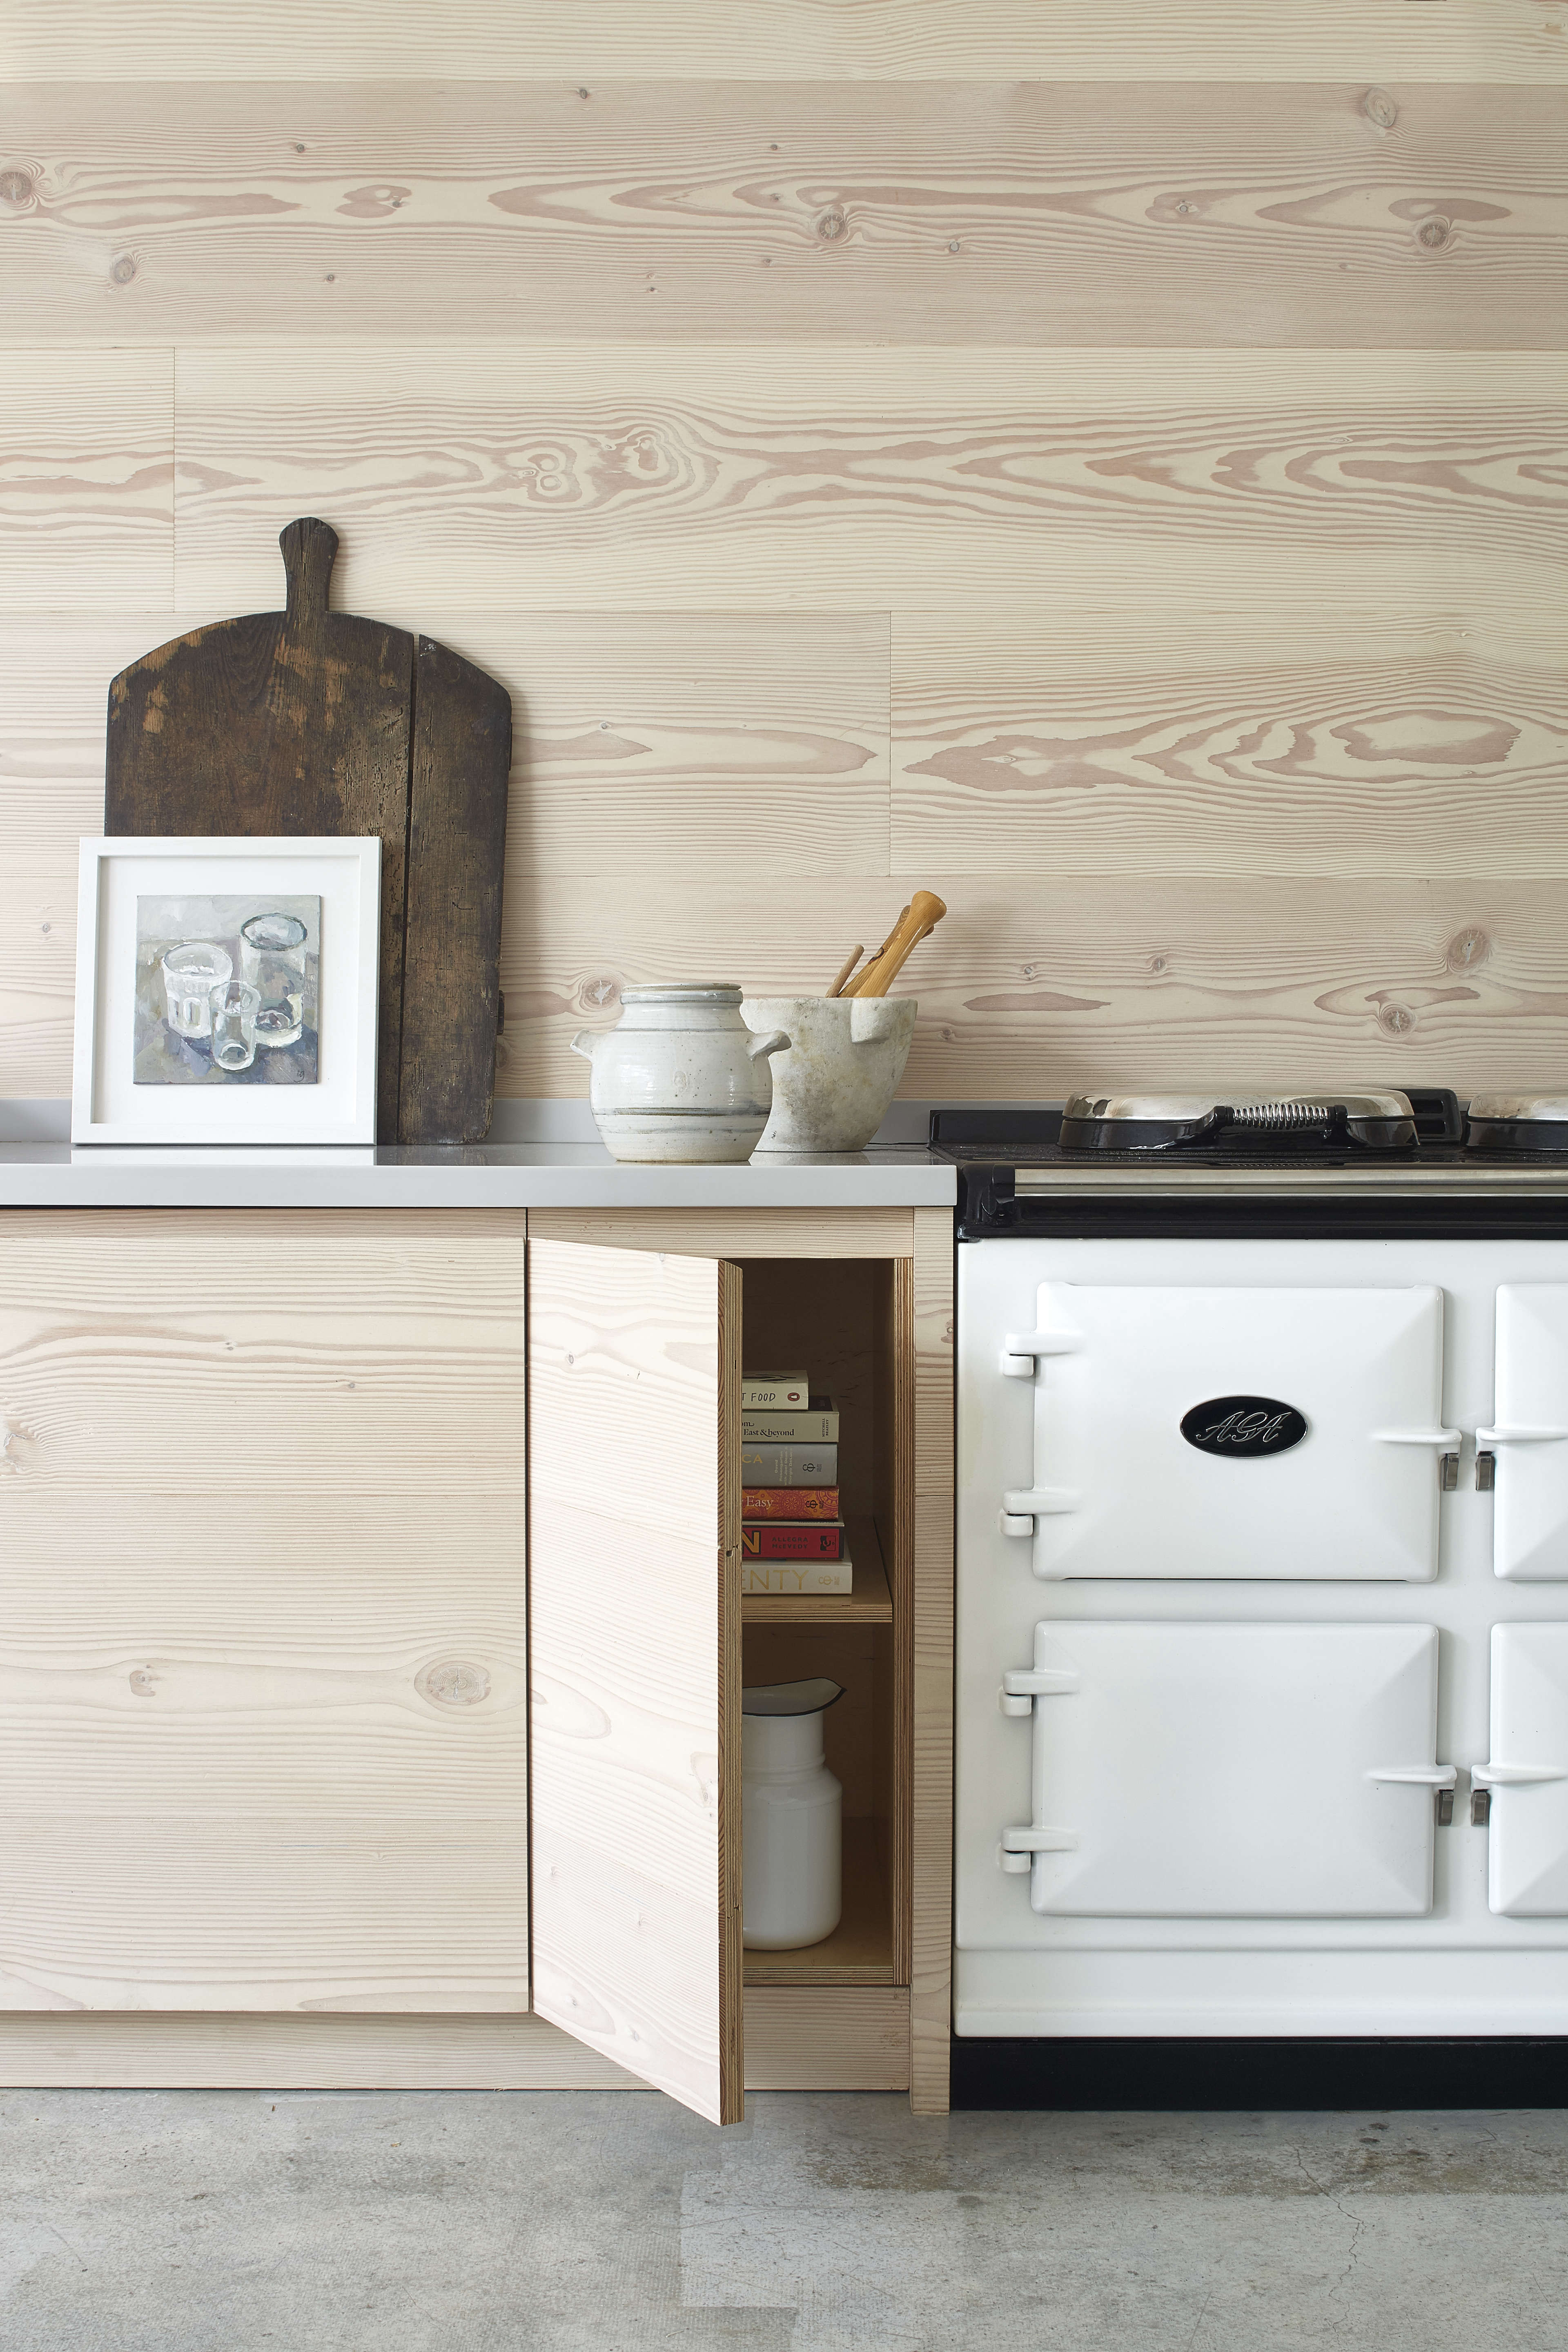 dougls fir cabinets and wall paneling and a white aga in a scandinavian pale wo 15